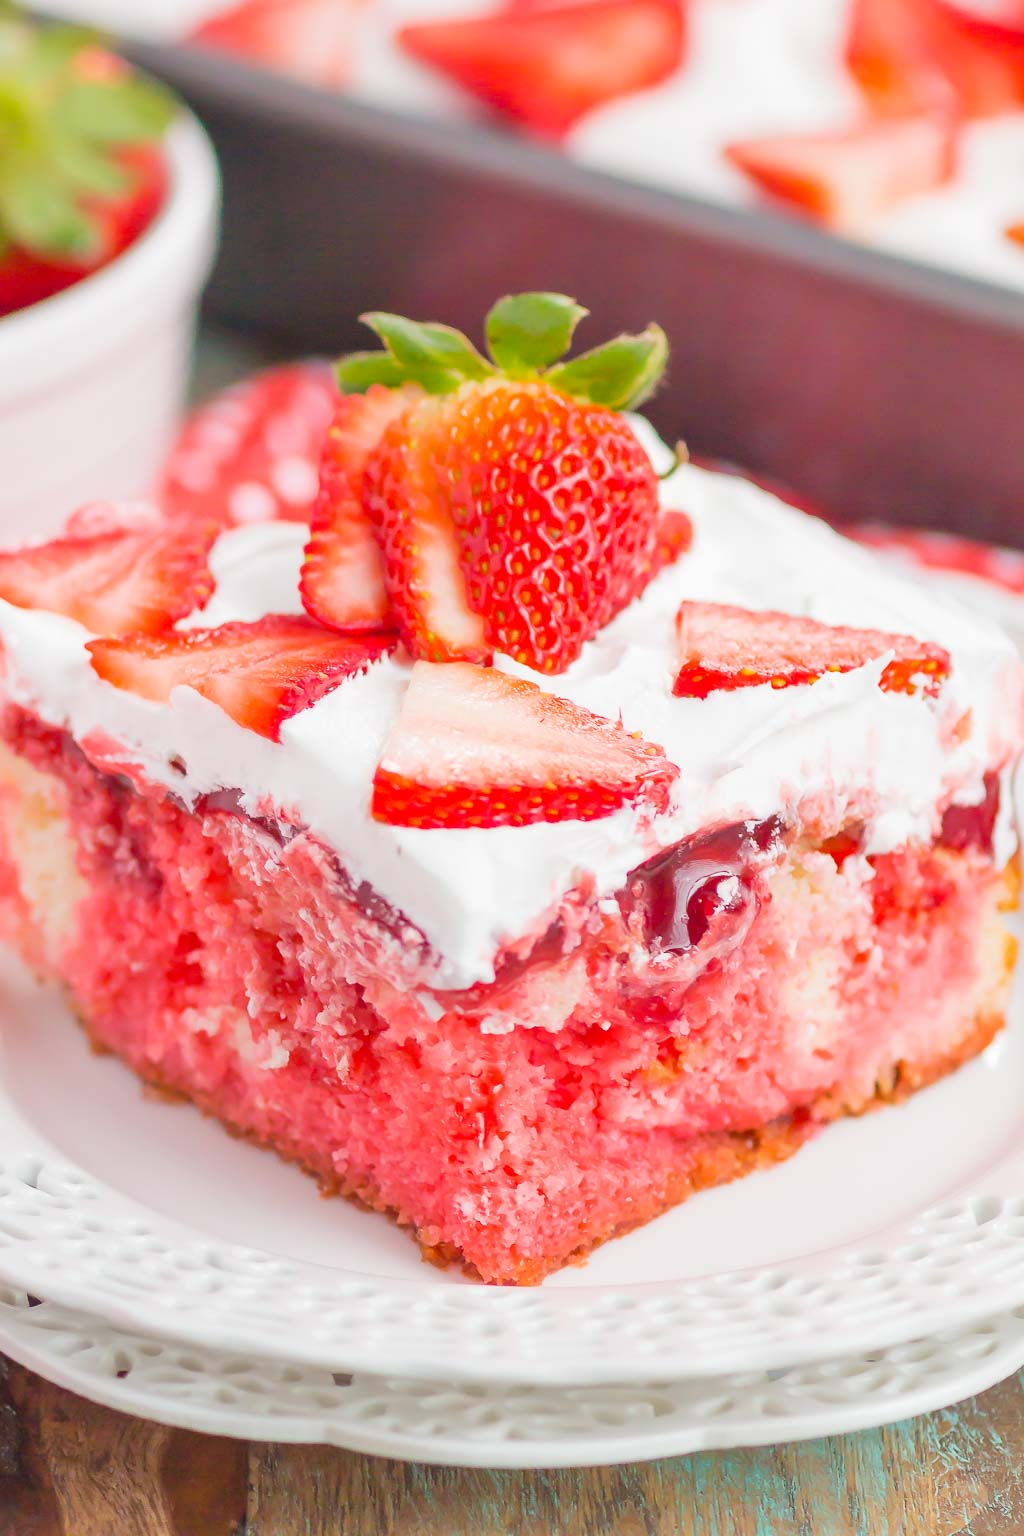 This Easy Strawberry Poke Cake features a vanilla cake that's studded with lots of strawberry flavor. Soft cake is drizzled with sweet strawberry jello and then topped with a strawberry glaze and a creamy whipped topping. Simple to make and even better to eat, you'll love this moist and fresh cake!